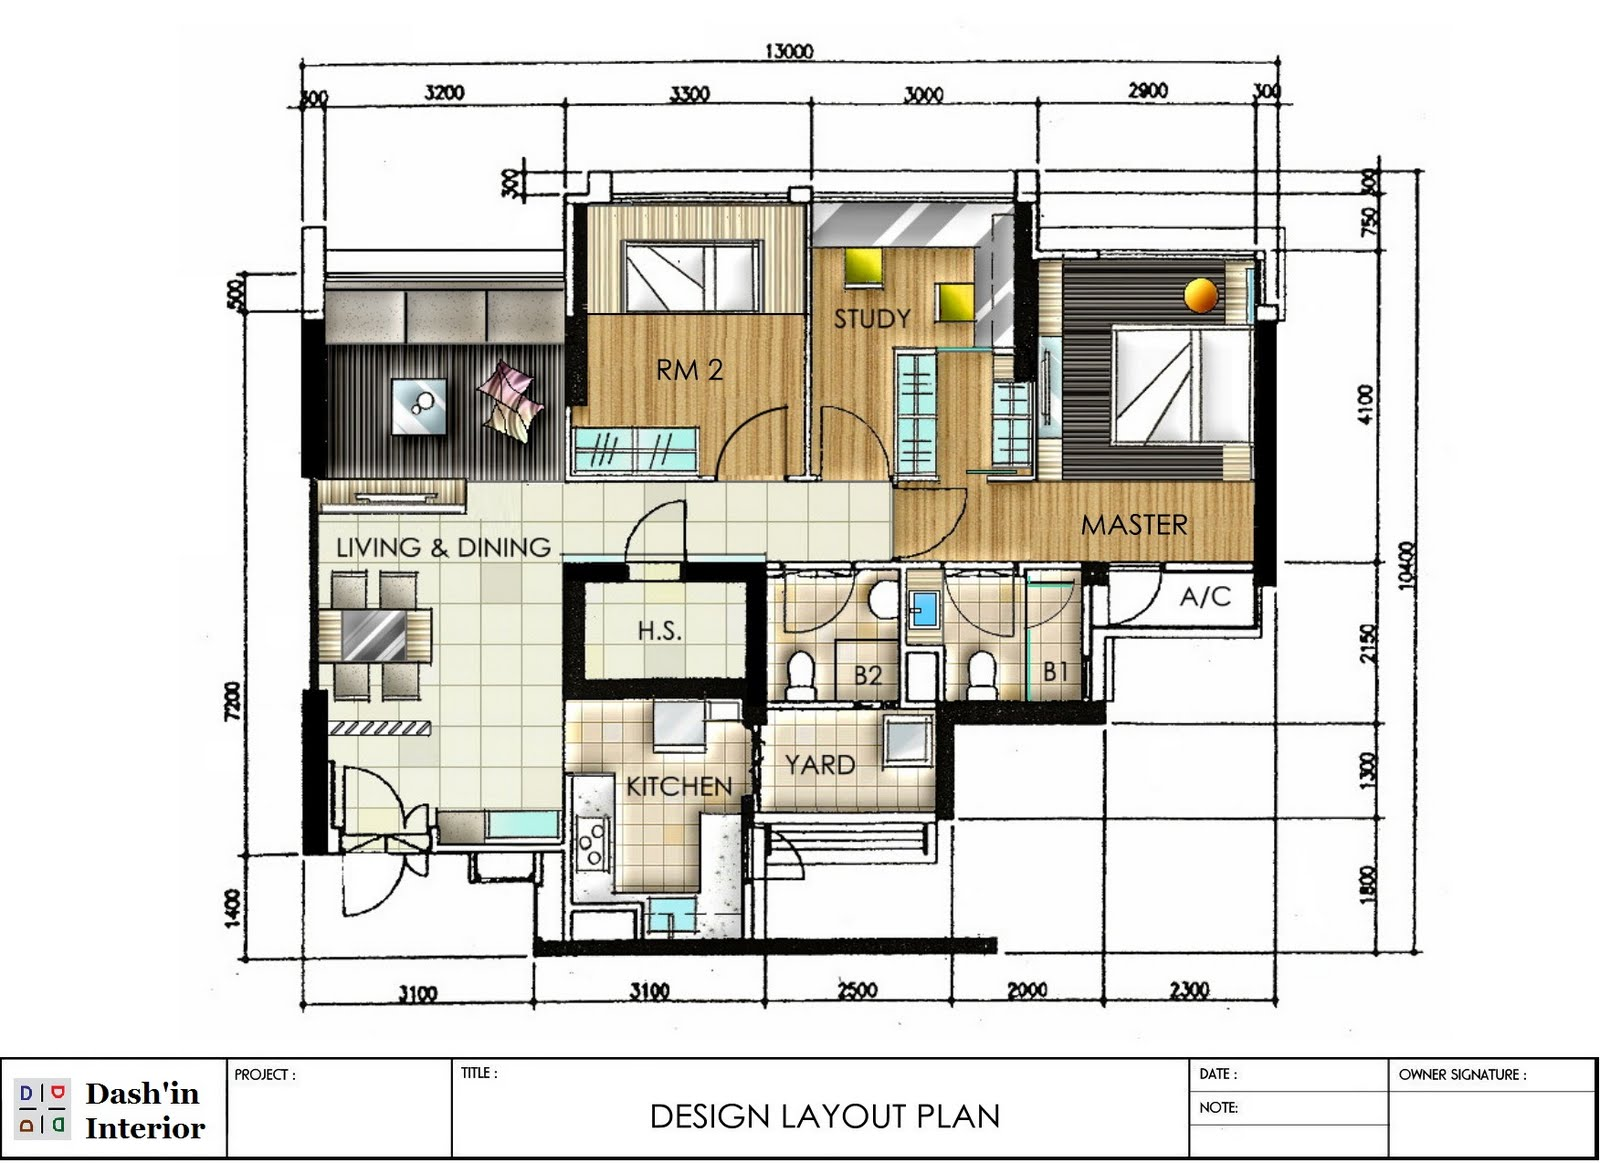 Dash 39 in interior hand drawn designs floor plan layout for Room design and layout